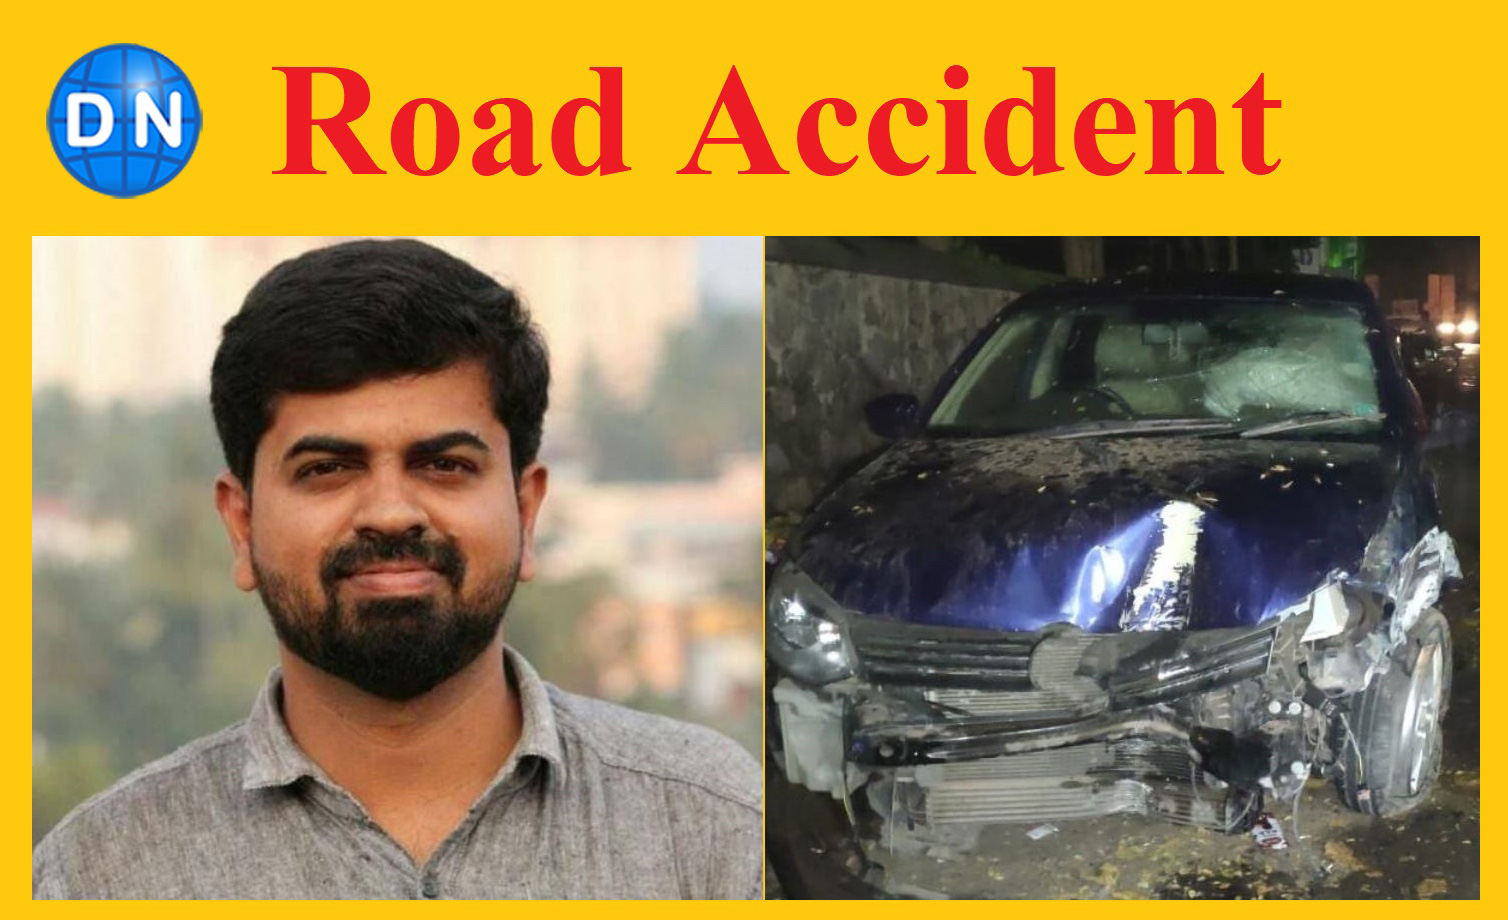 KM Basheer, a Kerala-based journalist killed in a road accident in Thiruvananthapuram